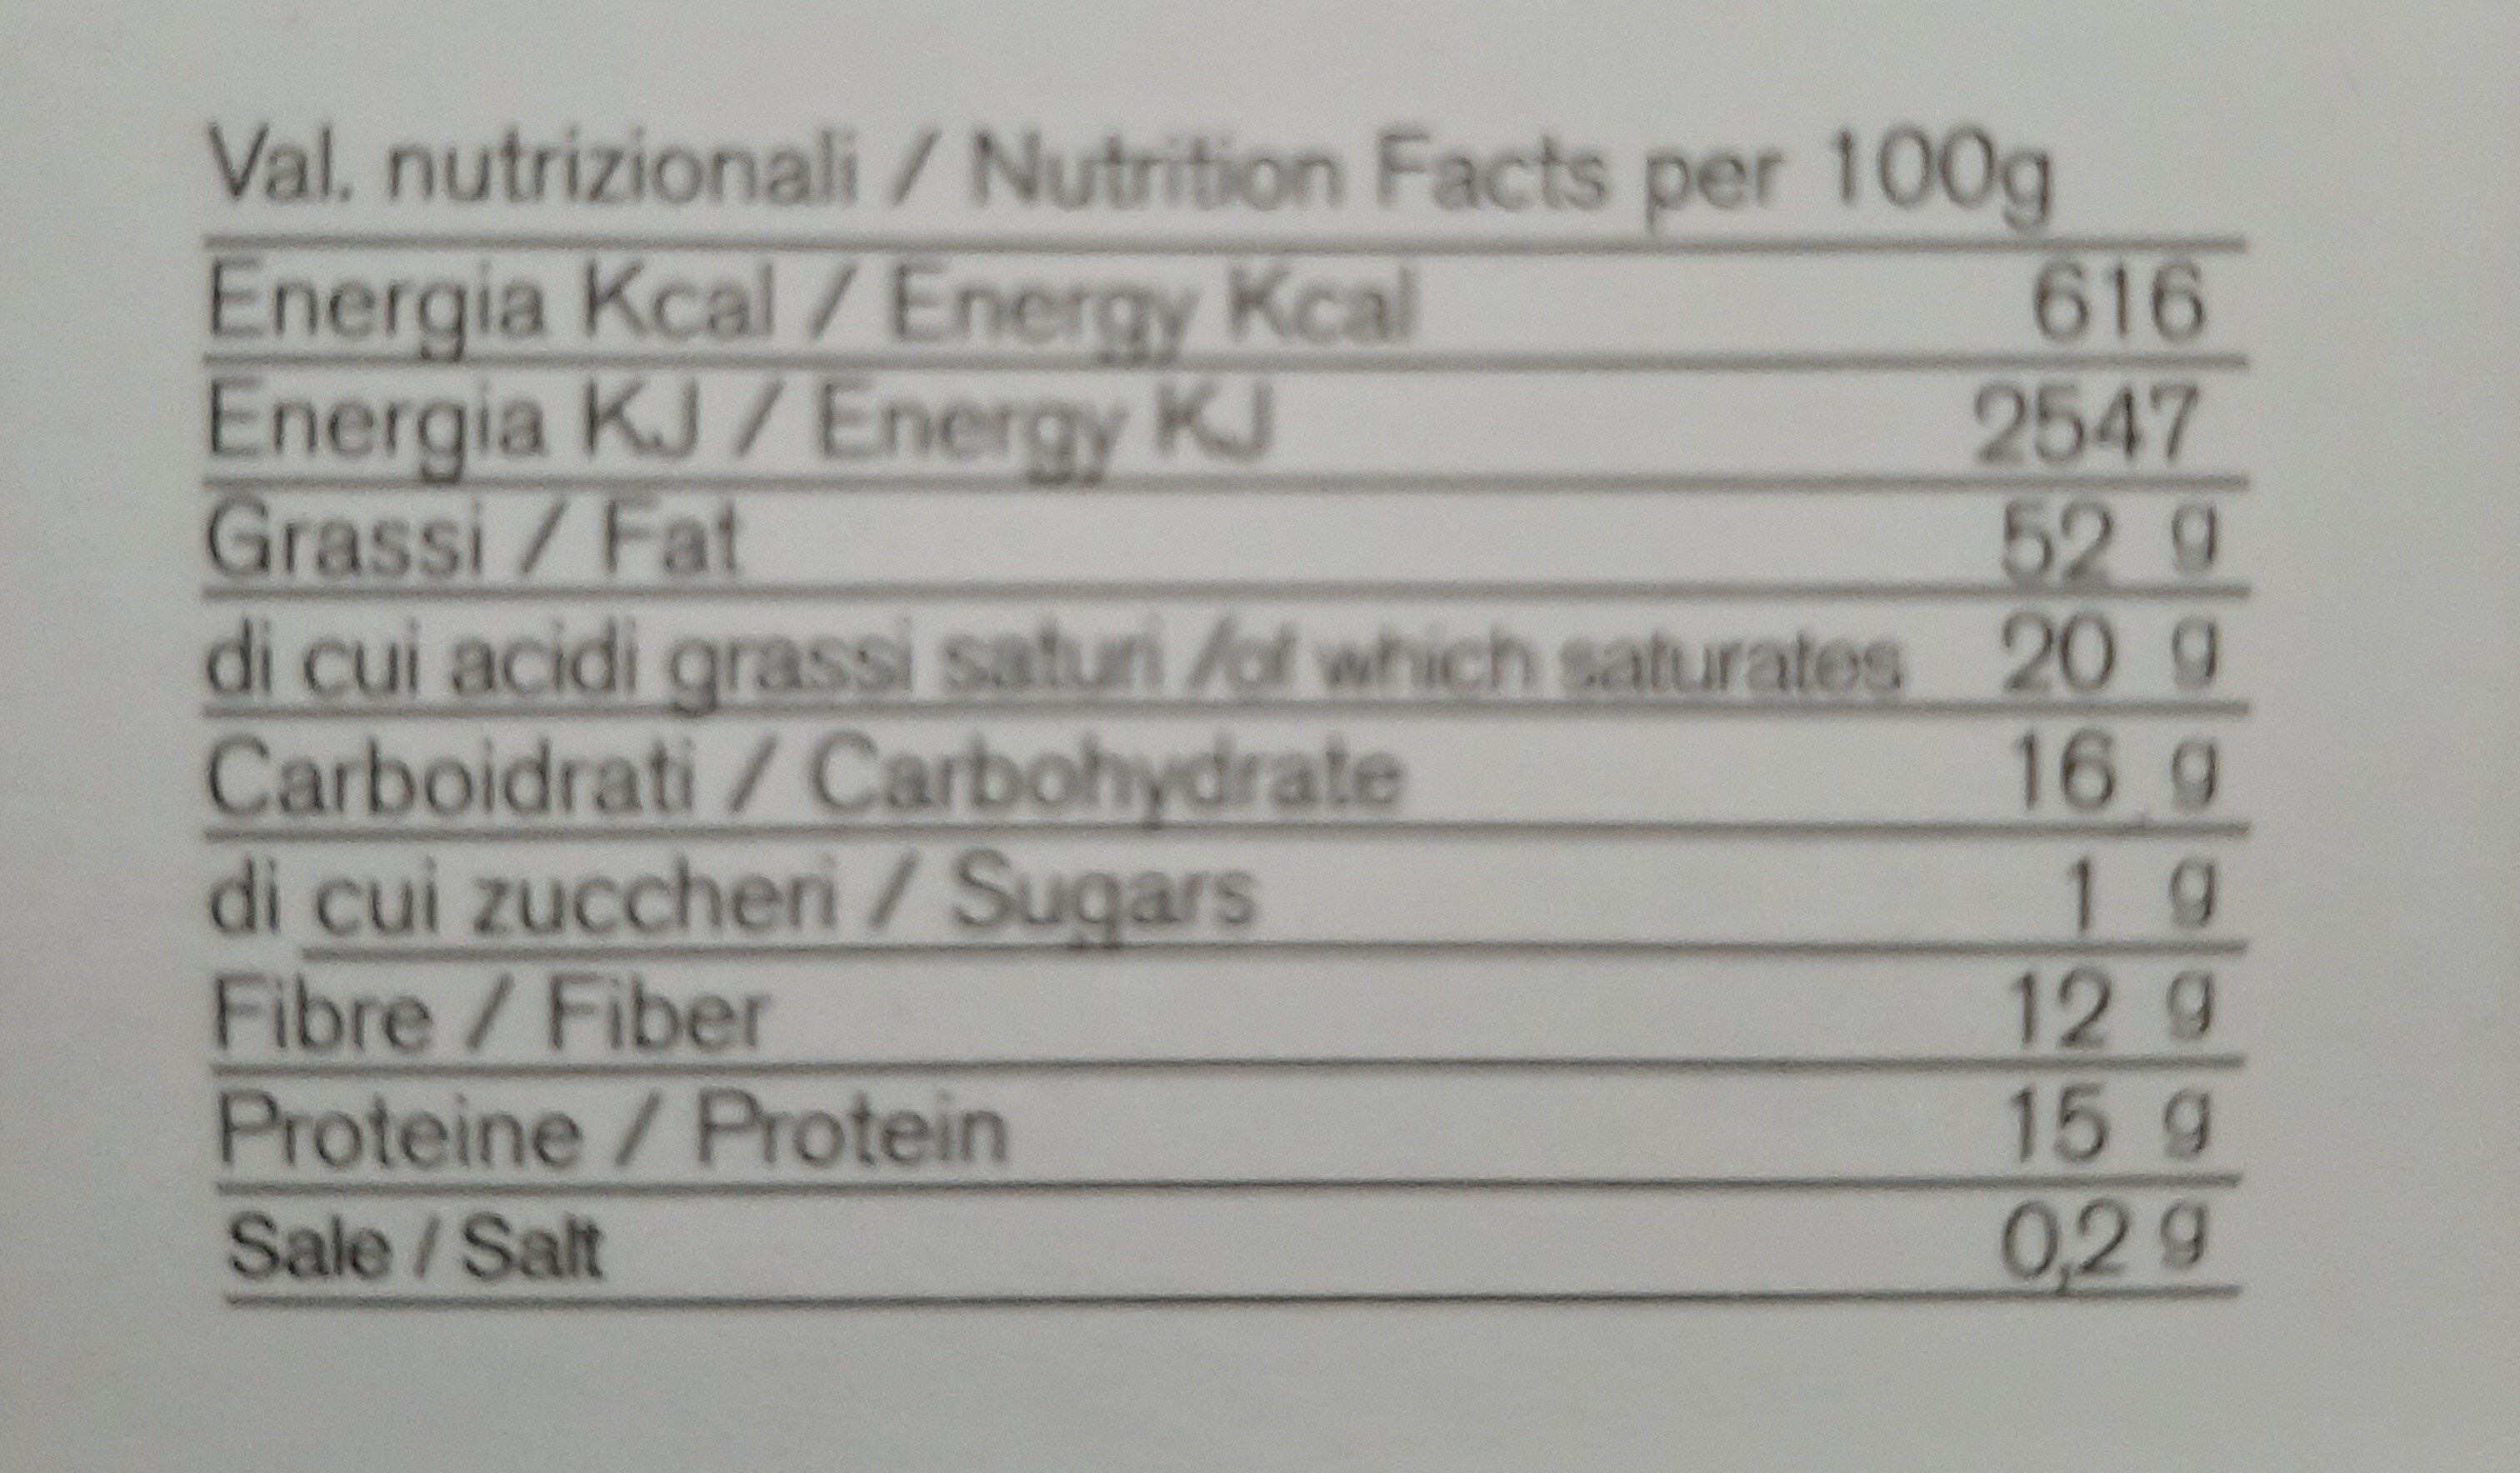 Fave di cacao - Nutrition facts - it